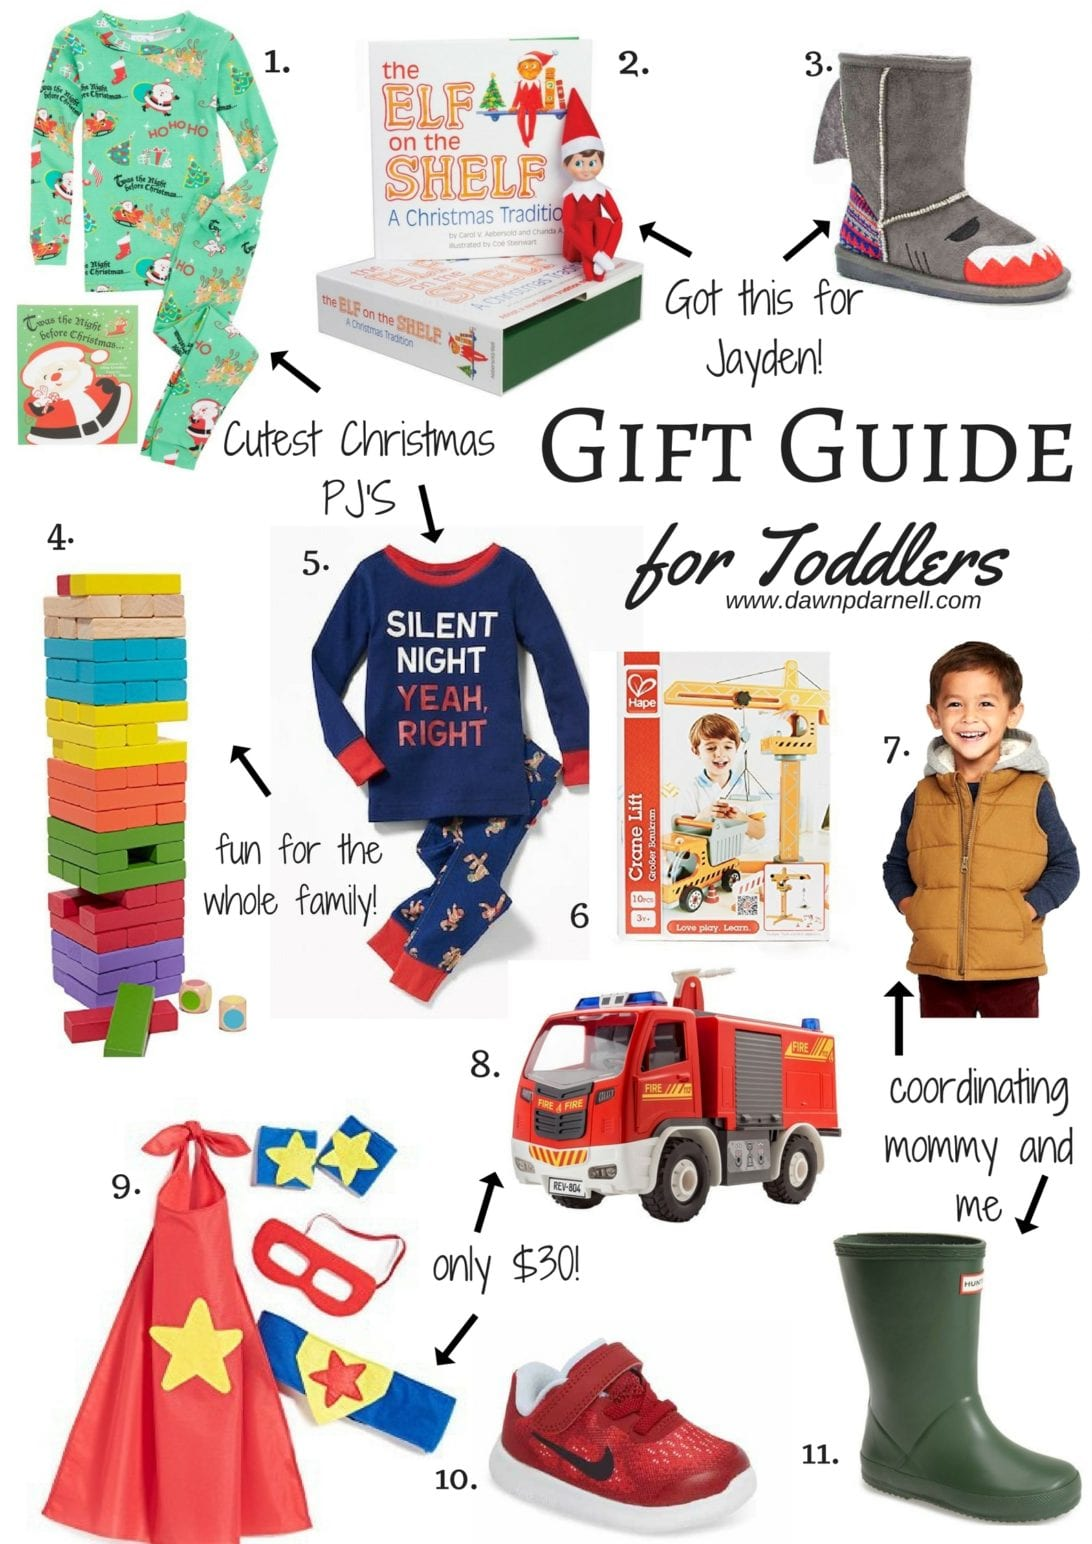 toddler gift guide, gift guide for kids, christmas gifts for children, kids hunter boots, elf on the shelf